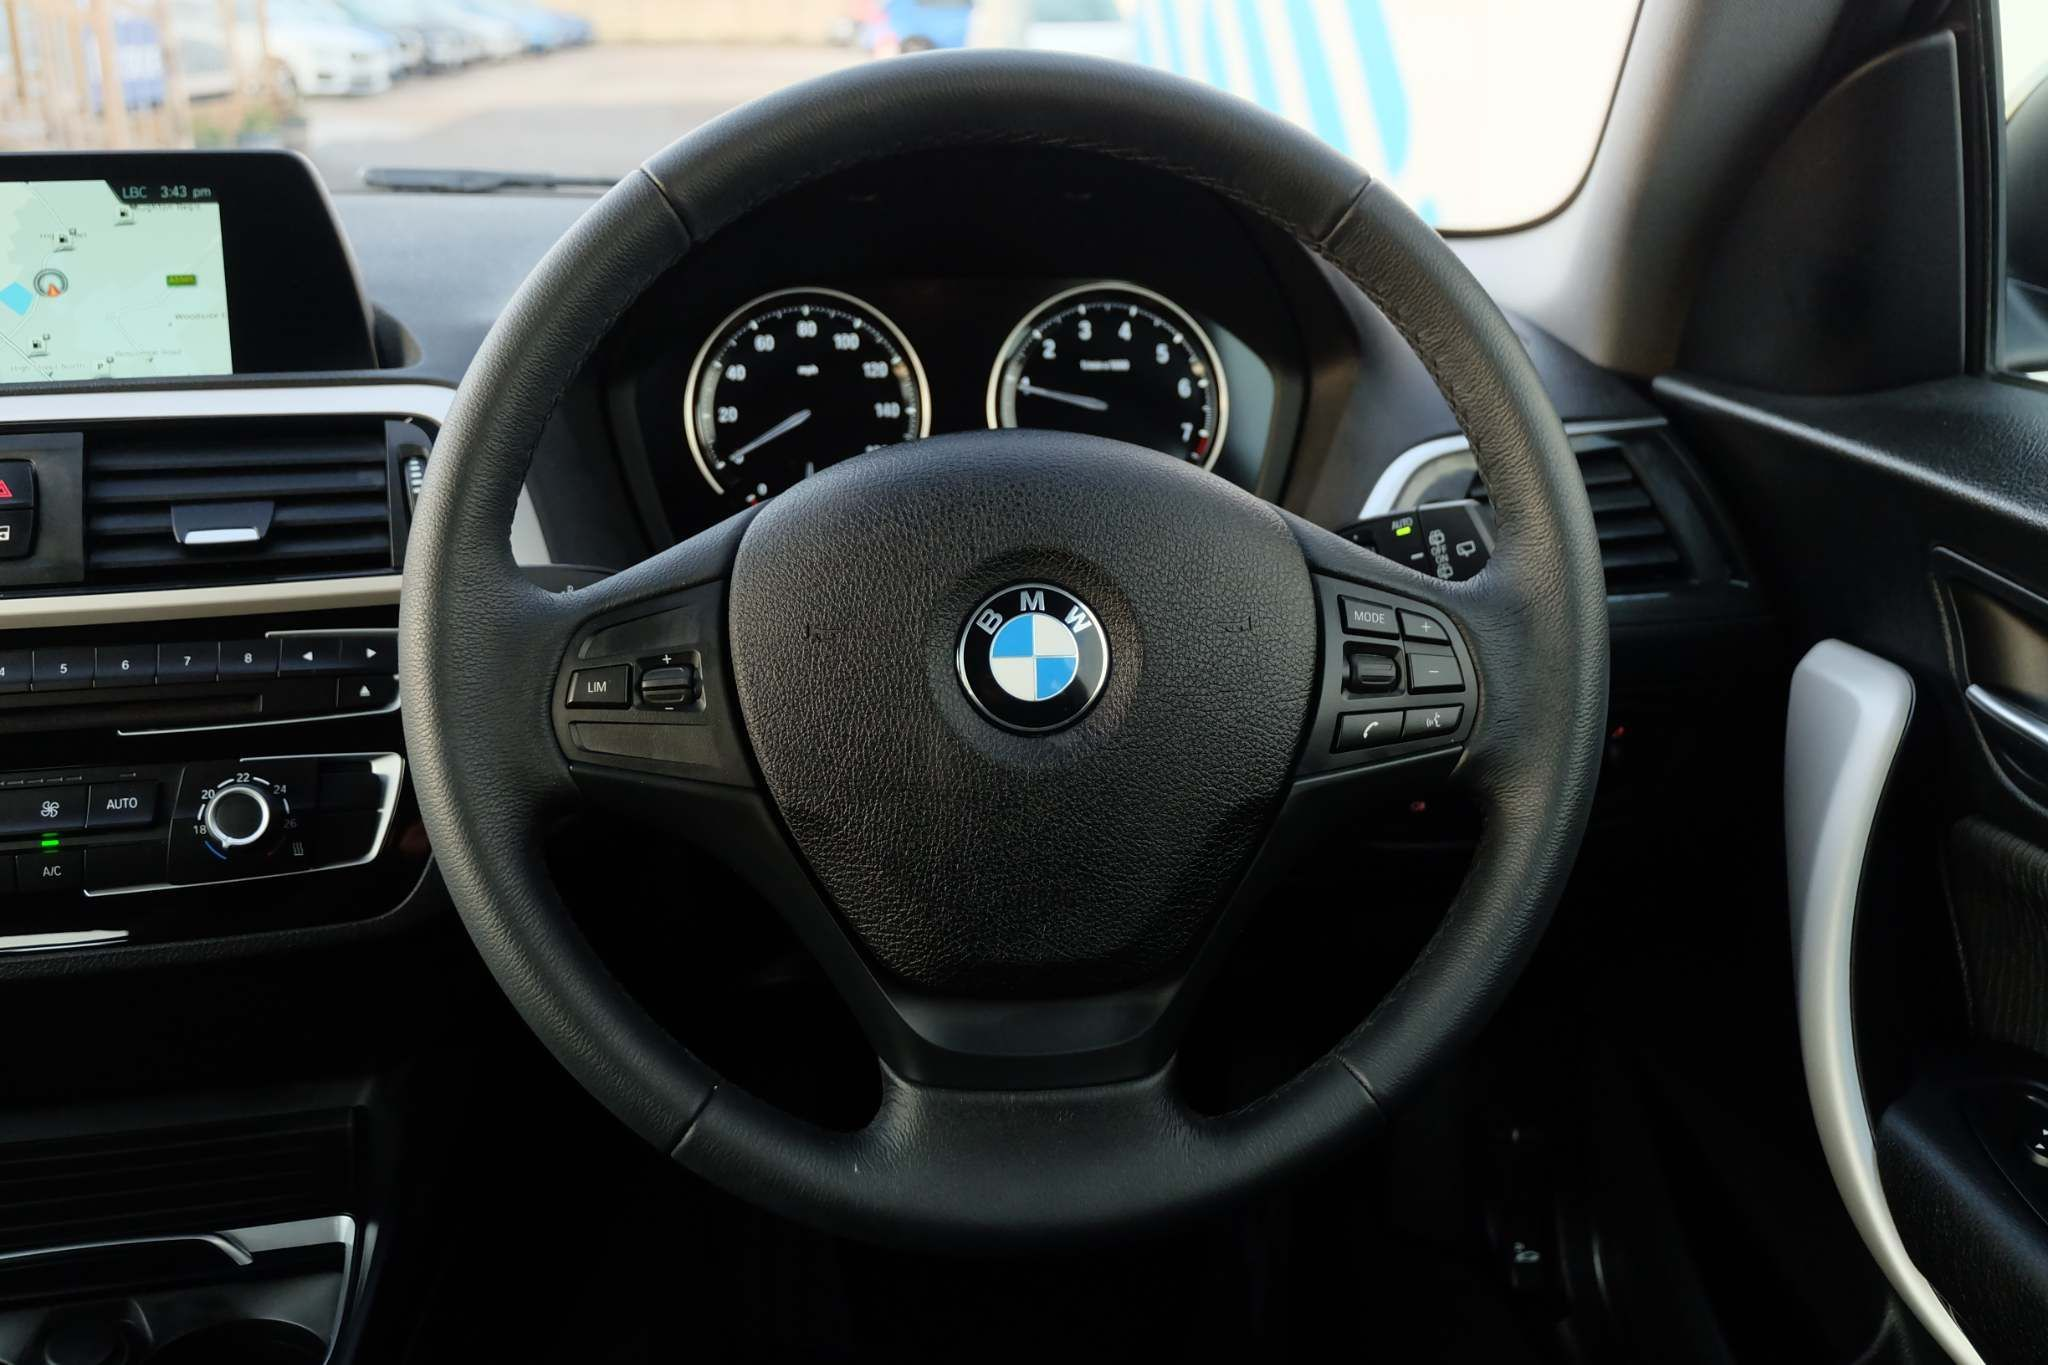 Used BMW 1 Series 1.5 118i Gpf Se Sports Hatch (s/s) 3dr